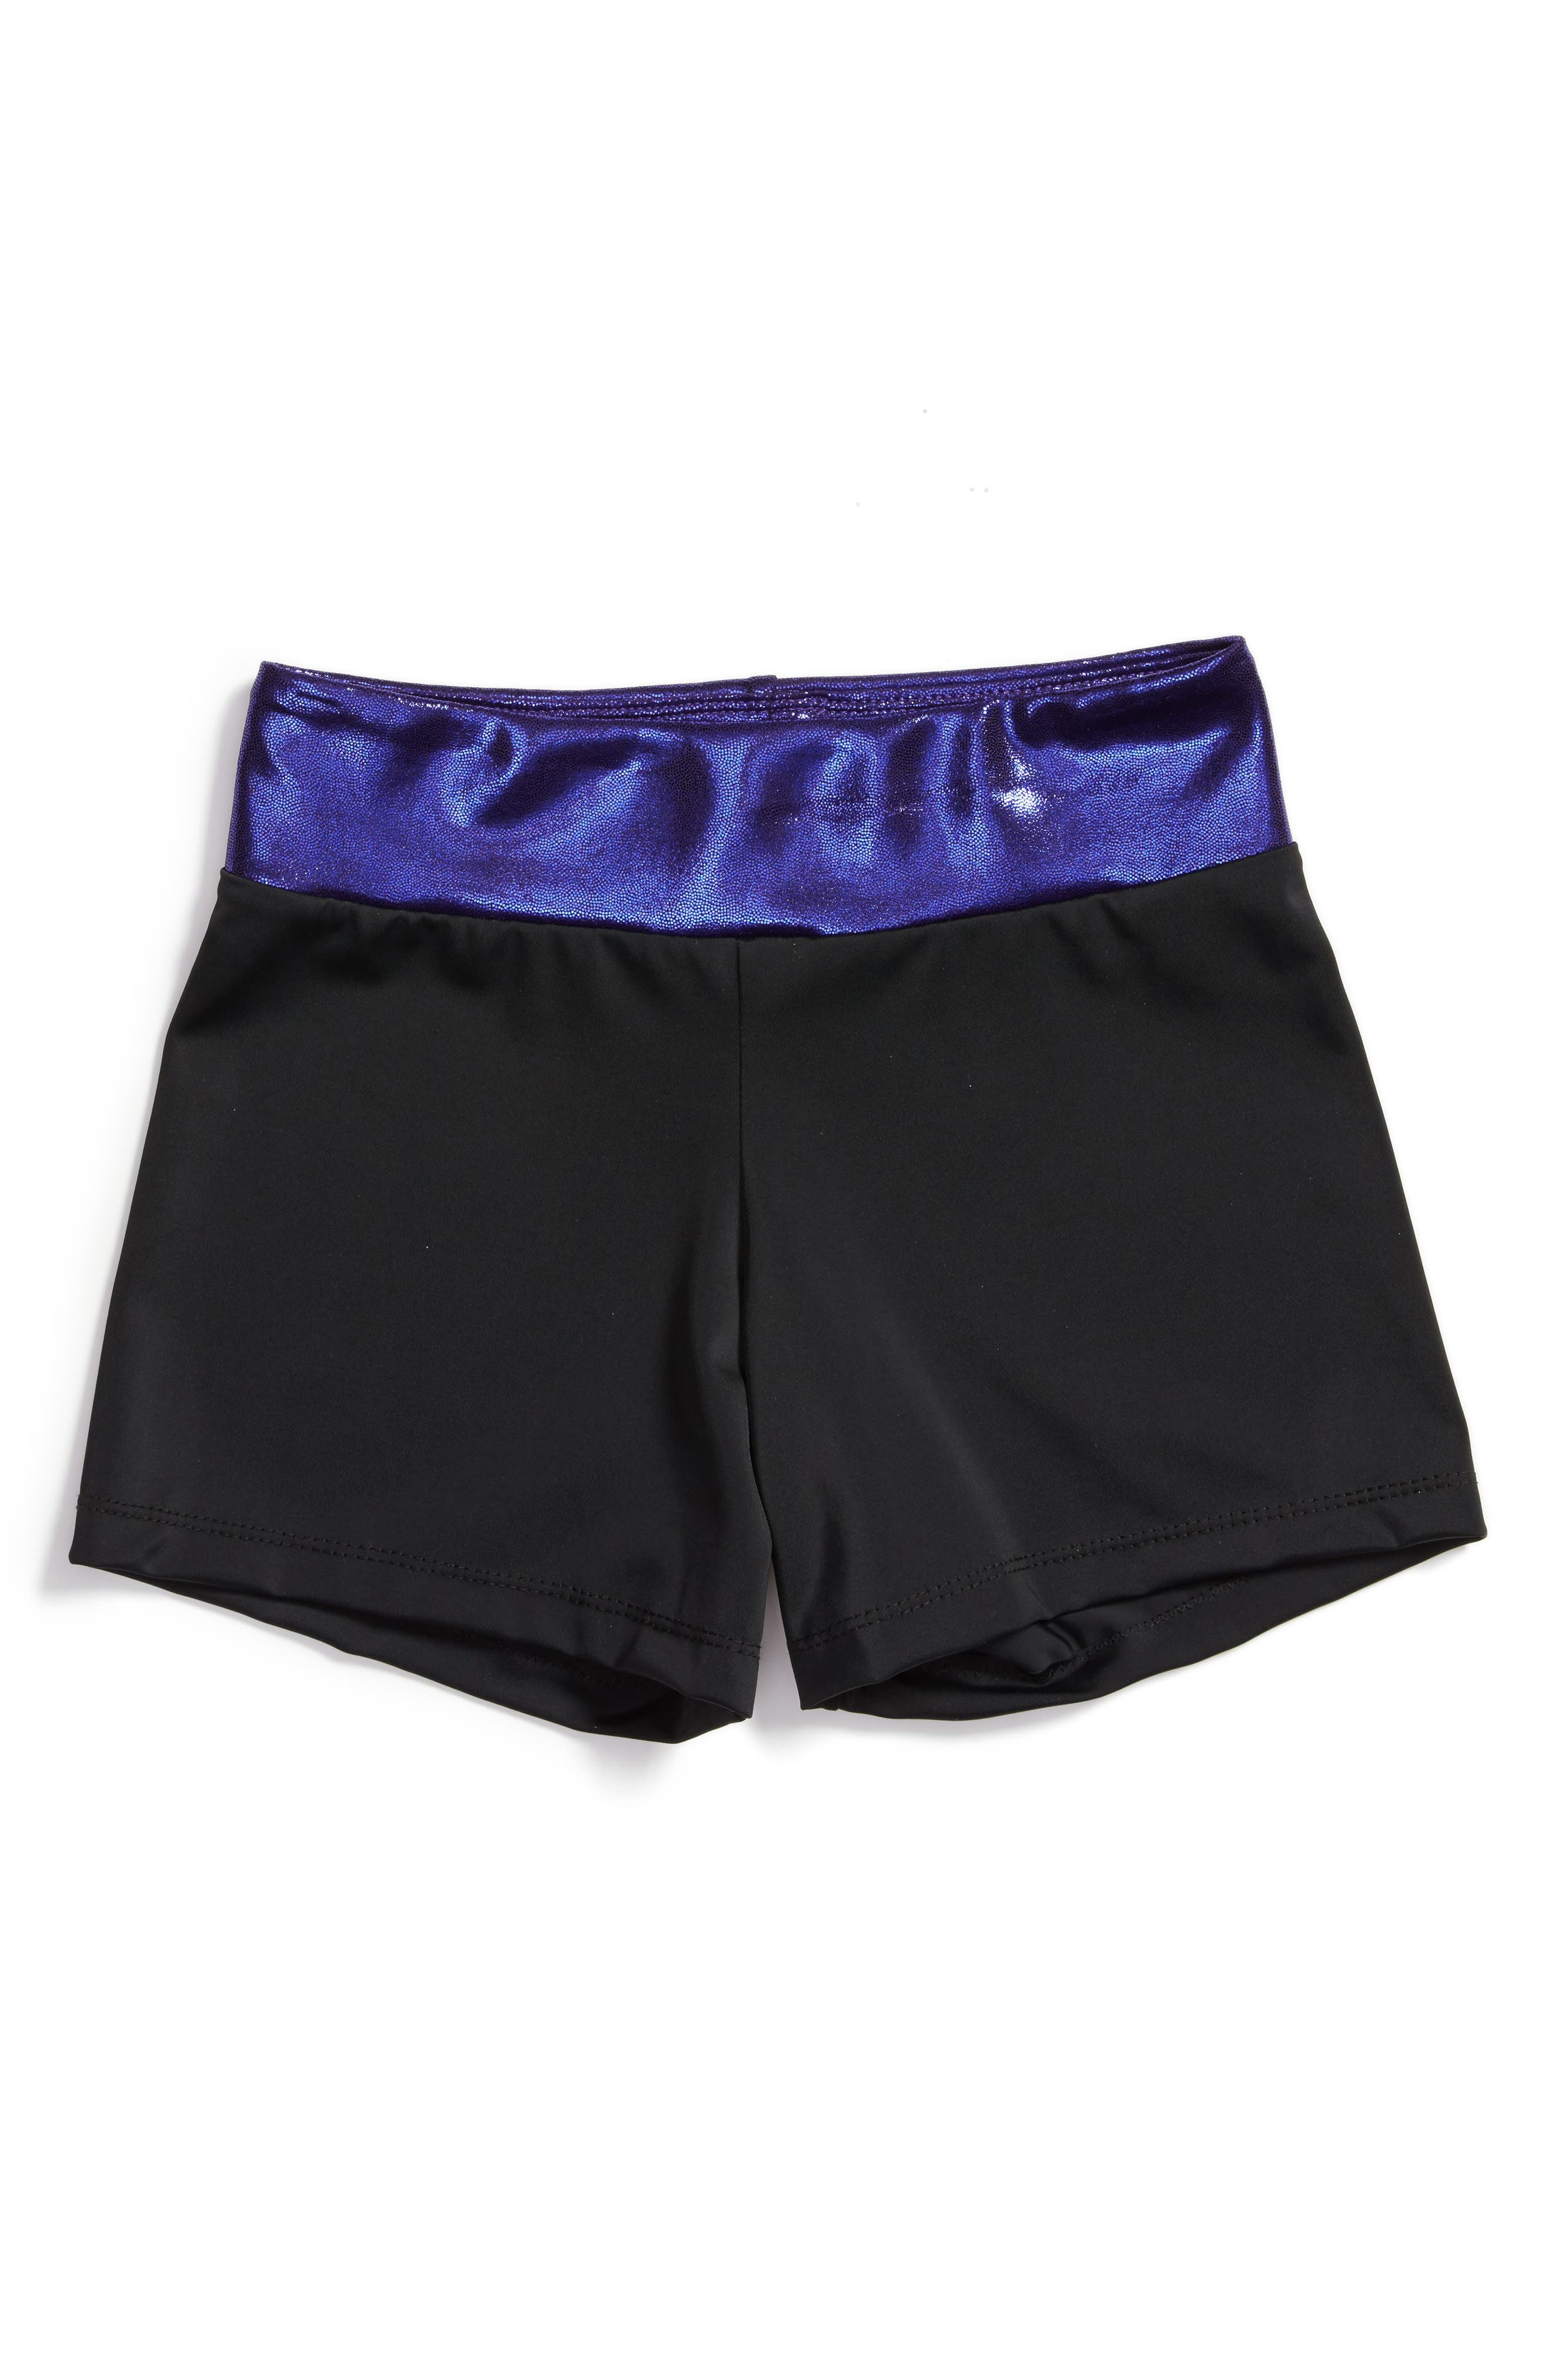 Space Girl Stretch Shorts,                         Main,                         color, Black/ Purple